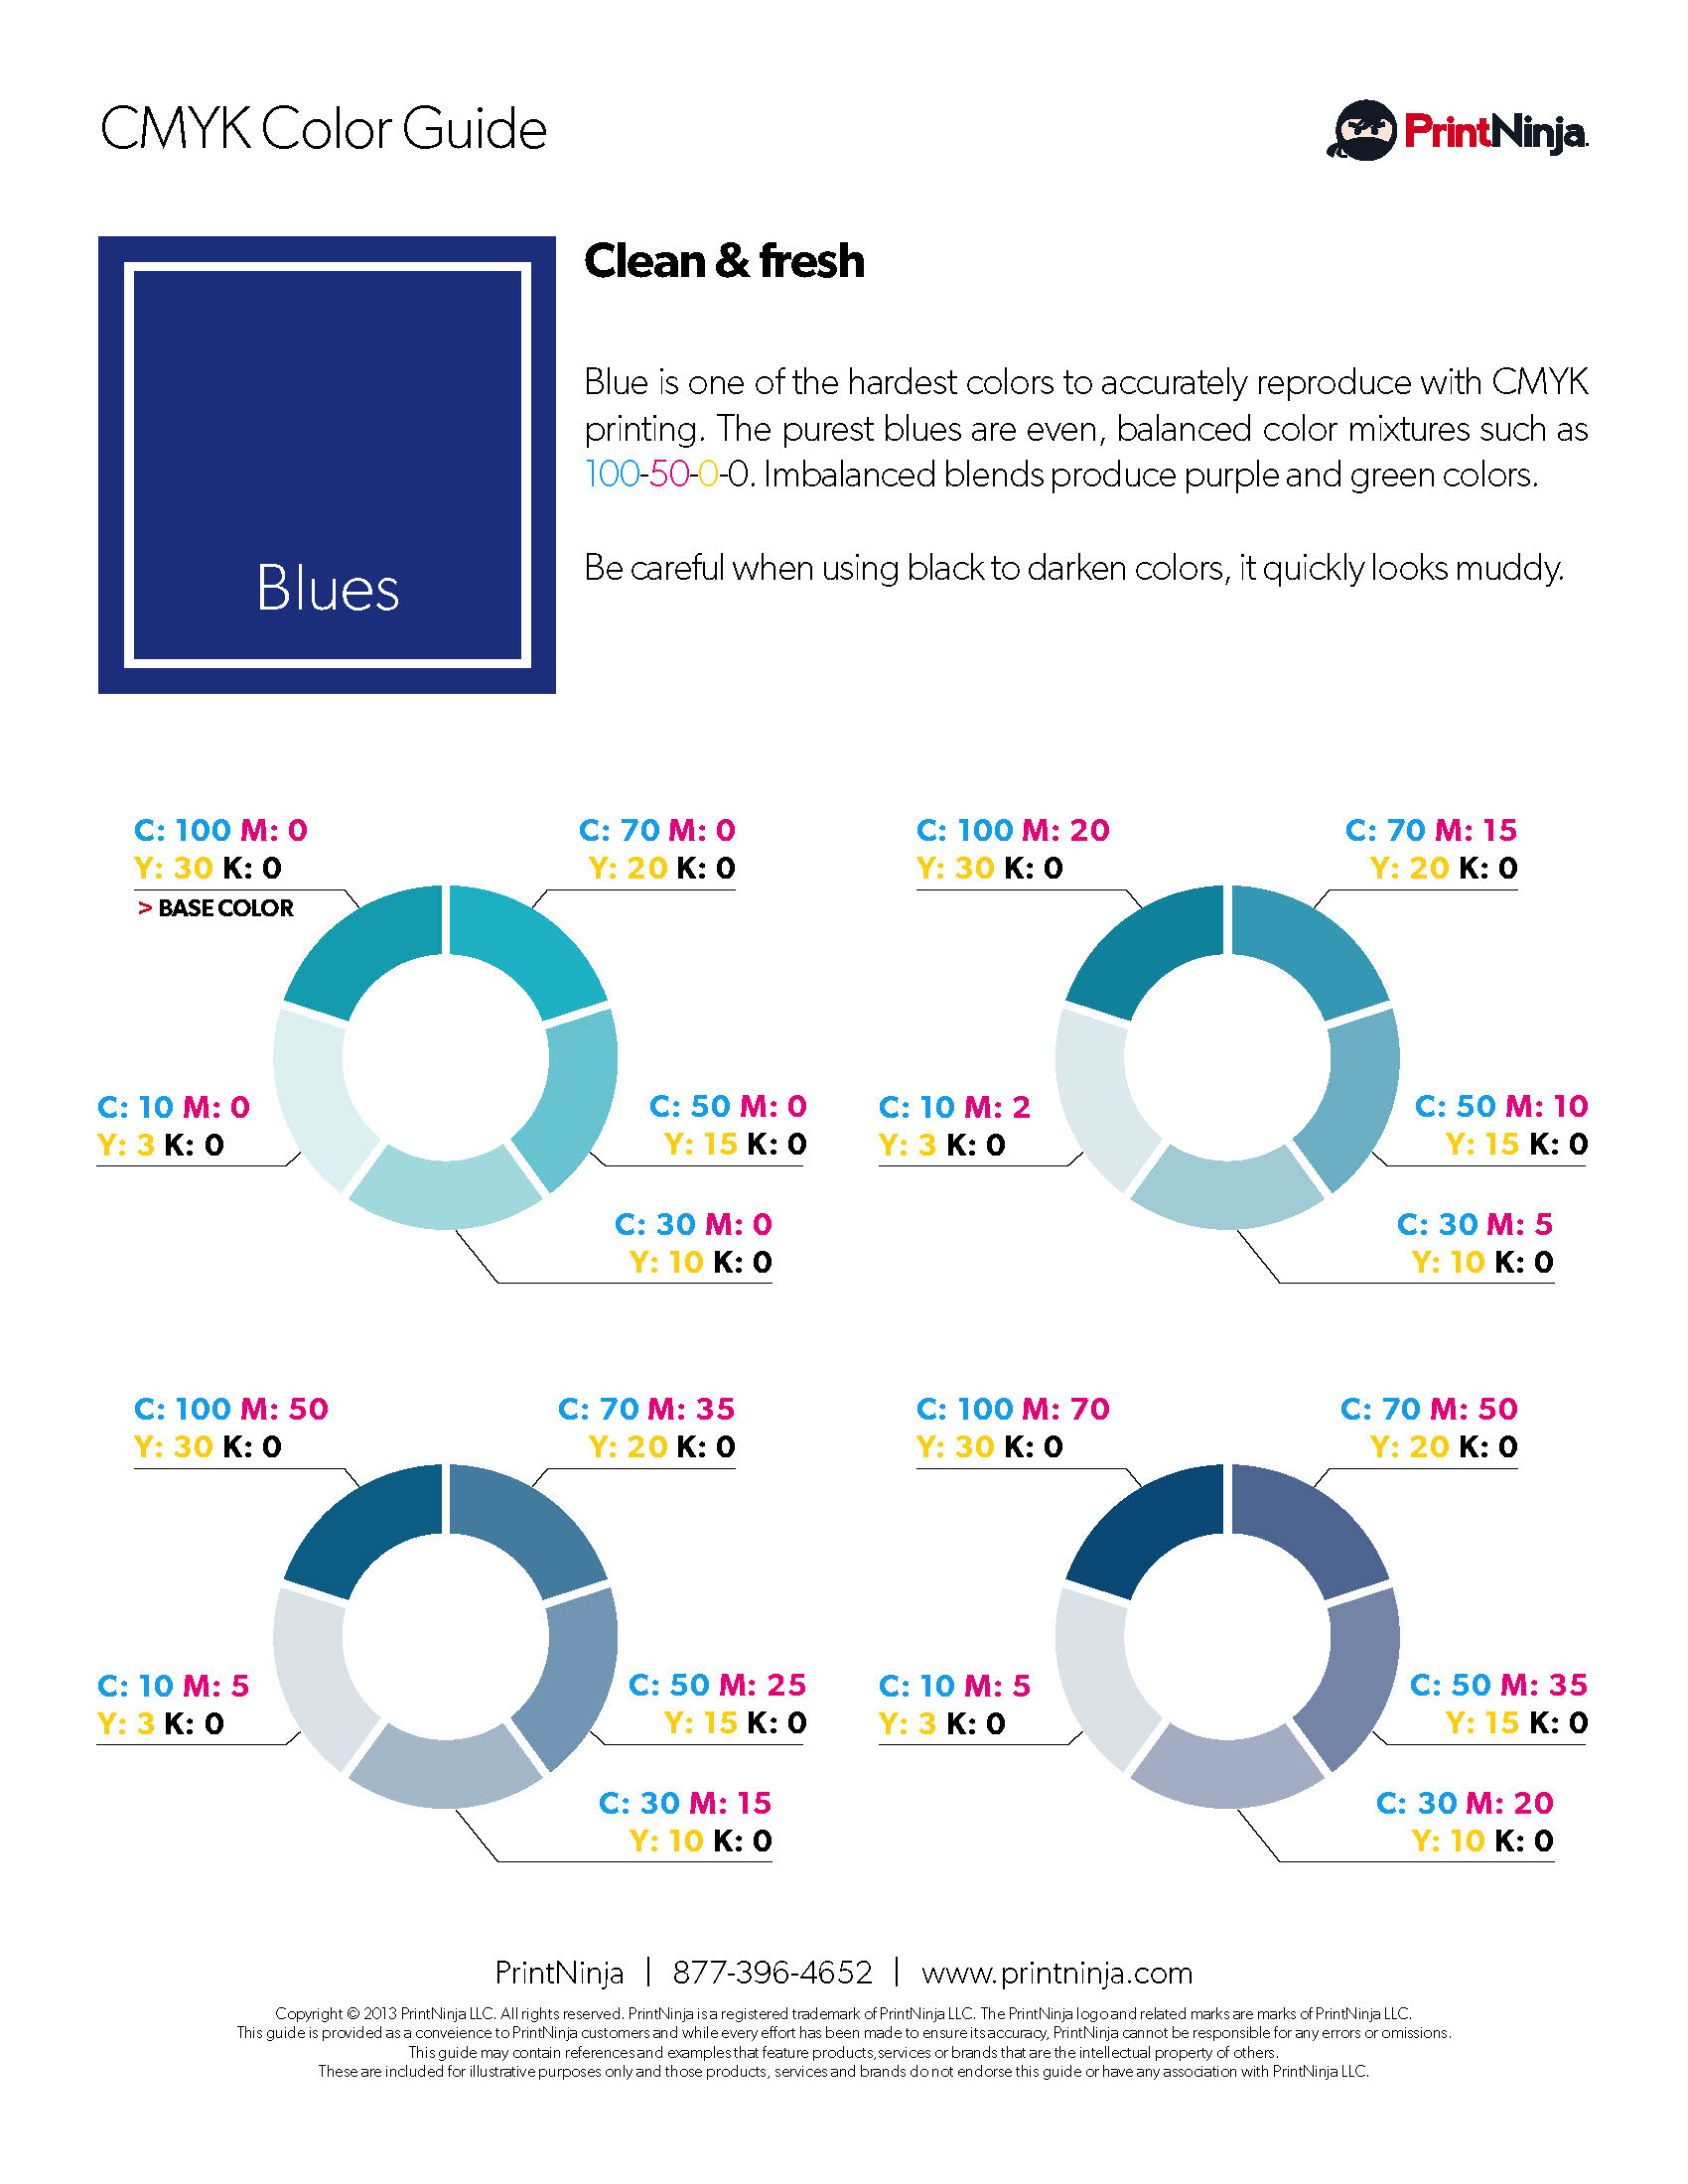 Blue CMYK Suggested Color Ink Values